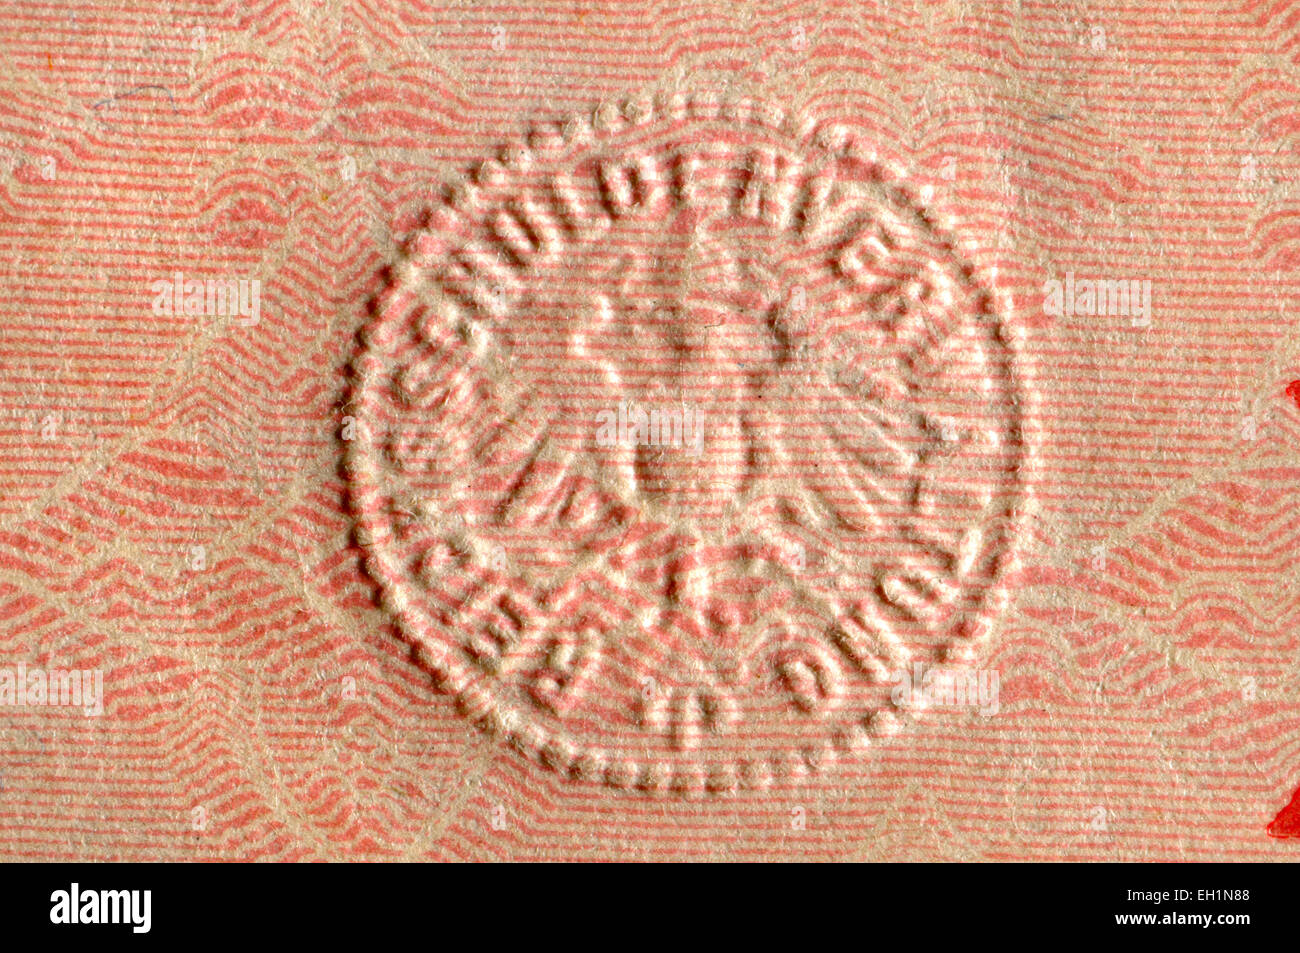 Detail from a 1914 German 2 Mark banknote showing raised embossed security feature - Stock Image